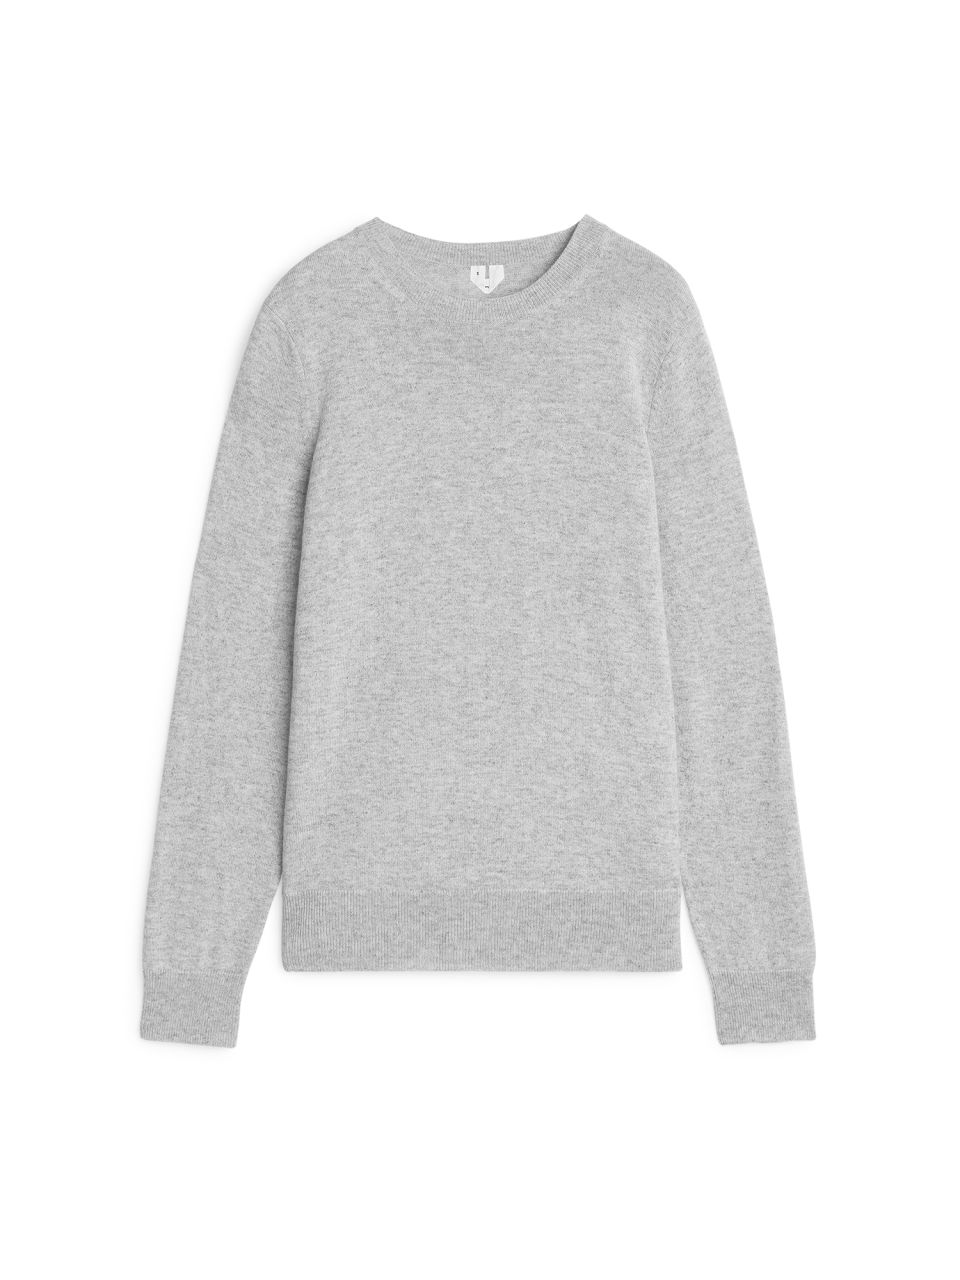 Front image of Arket cashmere crew-neck jumper in grey